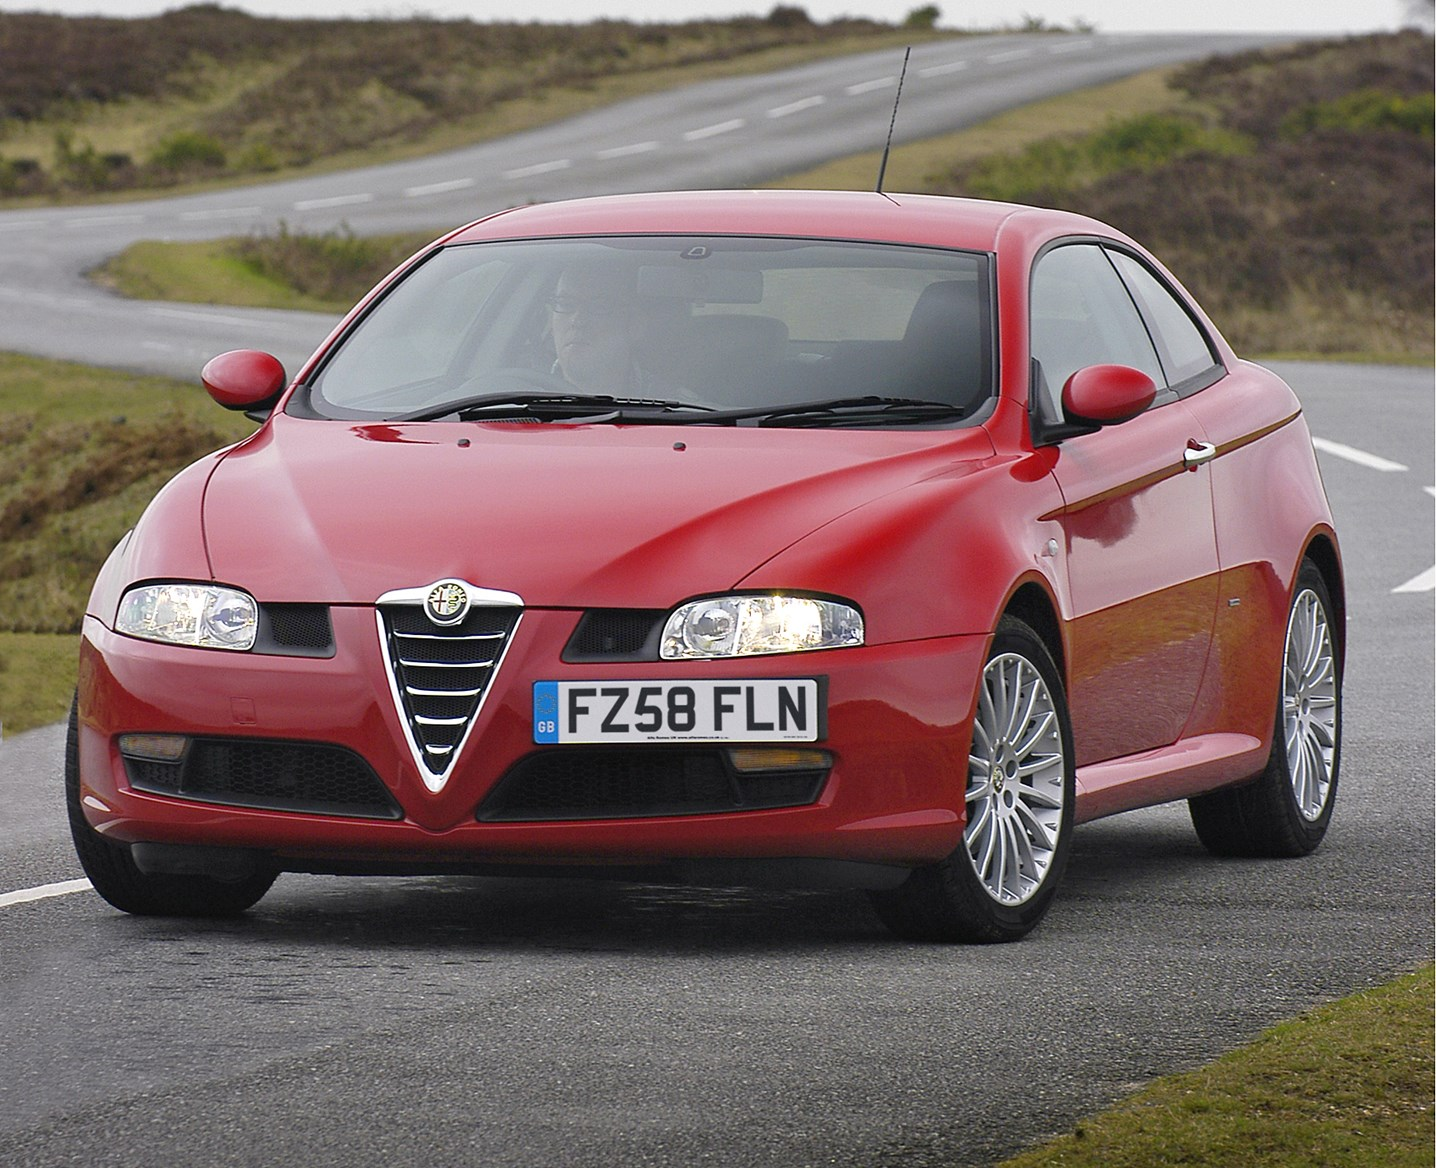 alfa romeo gt coupe review 2004 2010 parkers. Black Bedroom Furniture Sets. Home Design Ideas